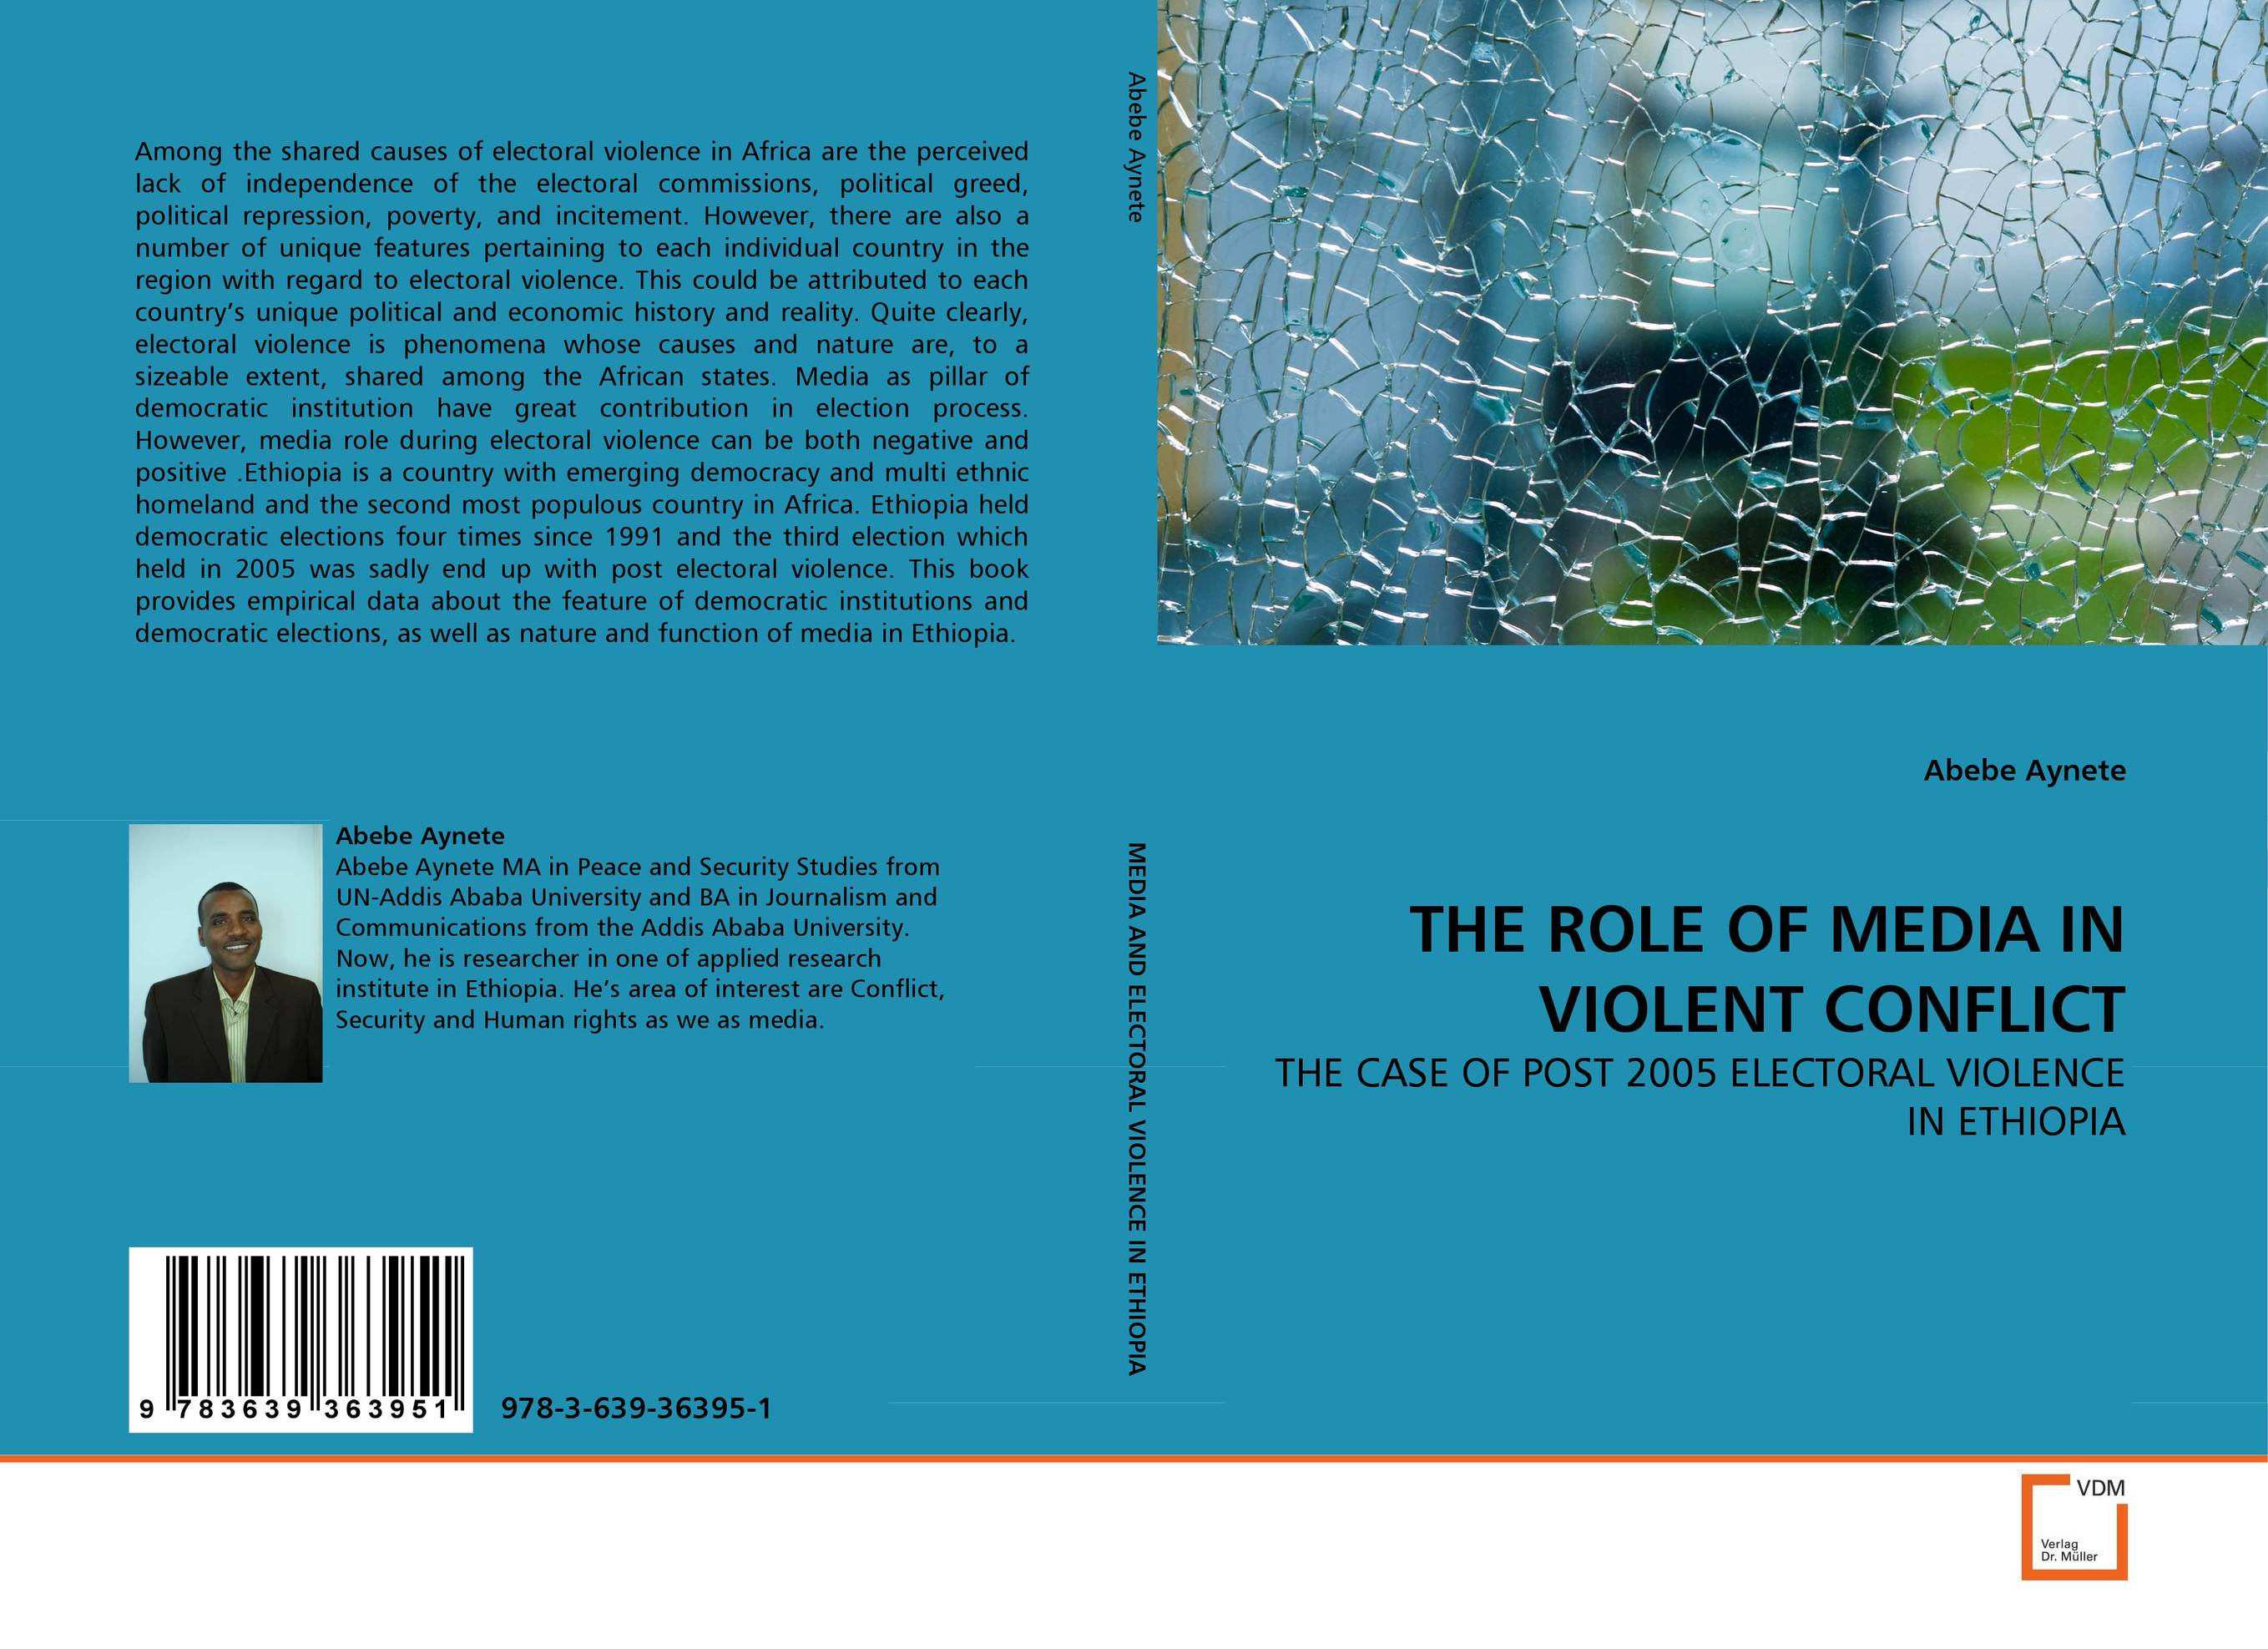 Фото THE ROLE OF MEDIA IN VIOLENT CONFLICT cervical cancer in amhara region in ethiopia